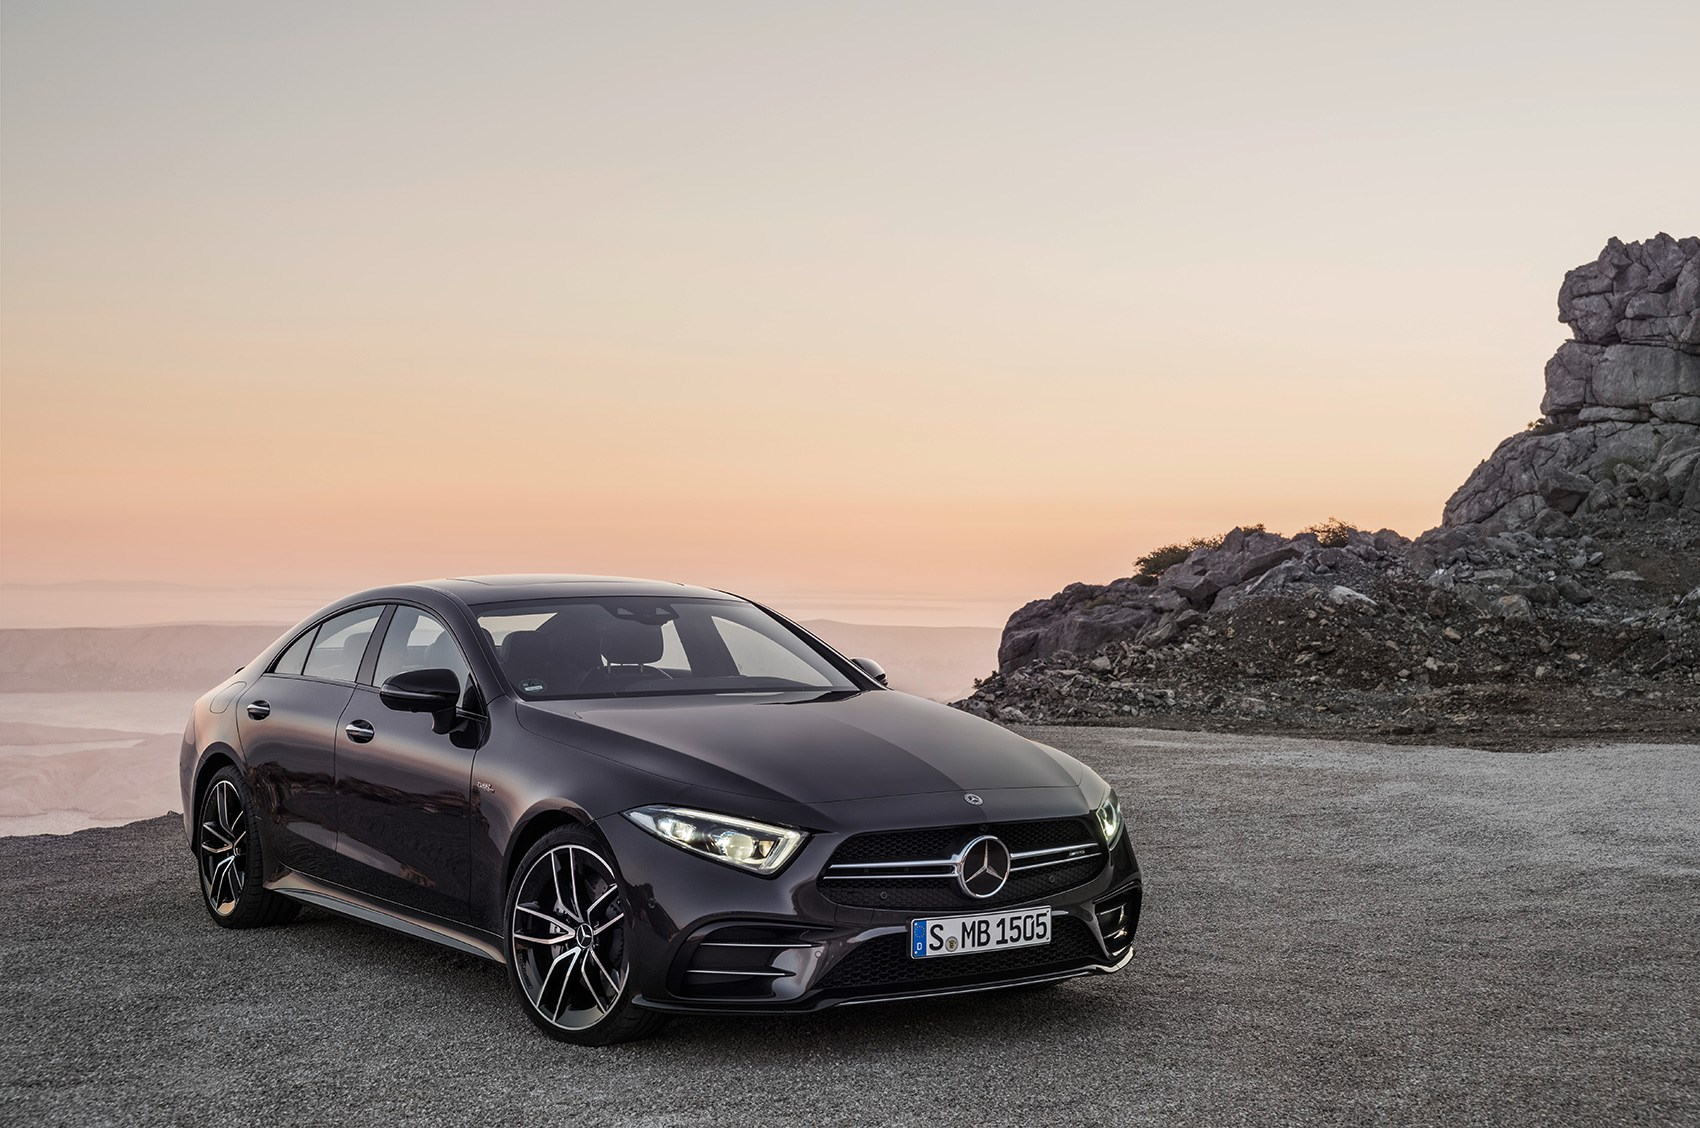 new mercedes amg cls 53 4matic e53 4matic coupe and cabriolet pictures news prices specs car. Black Bedroom Furniture Sets. Home Design Ideas